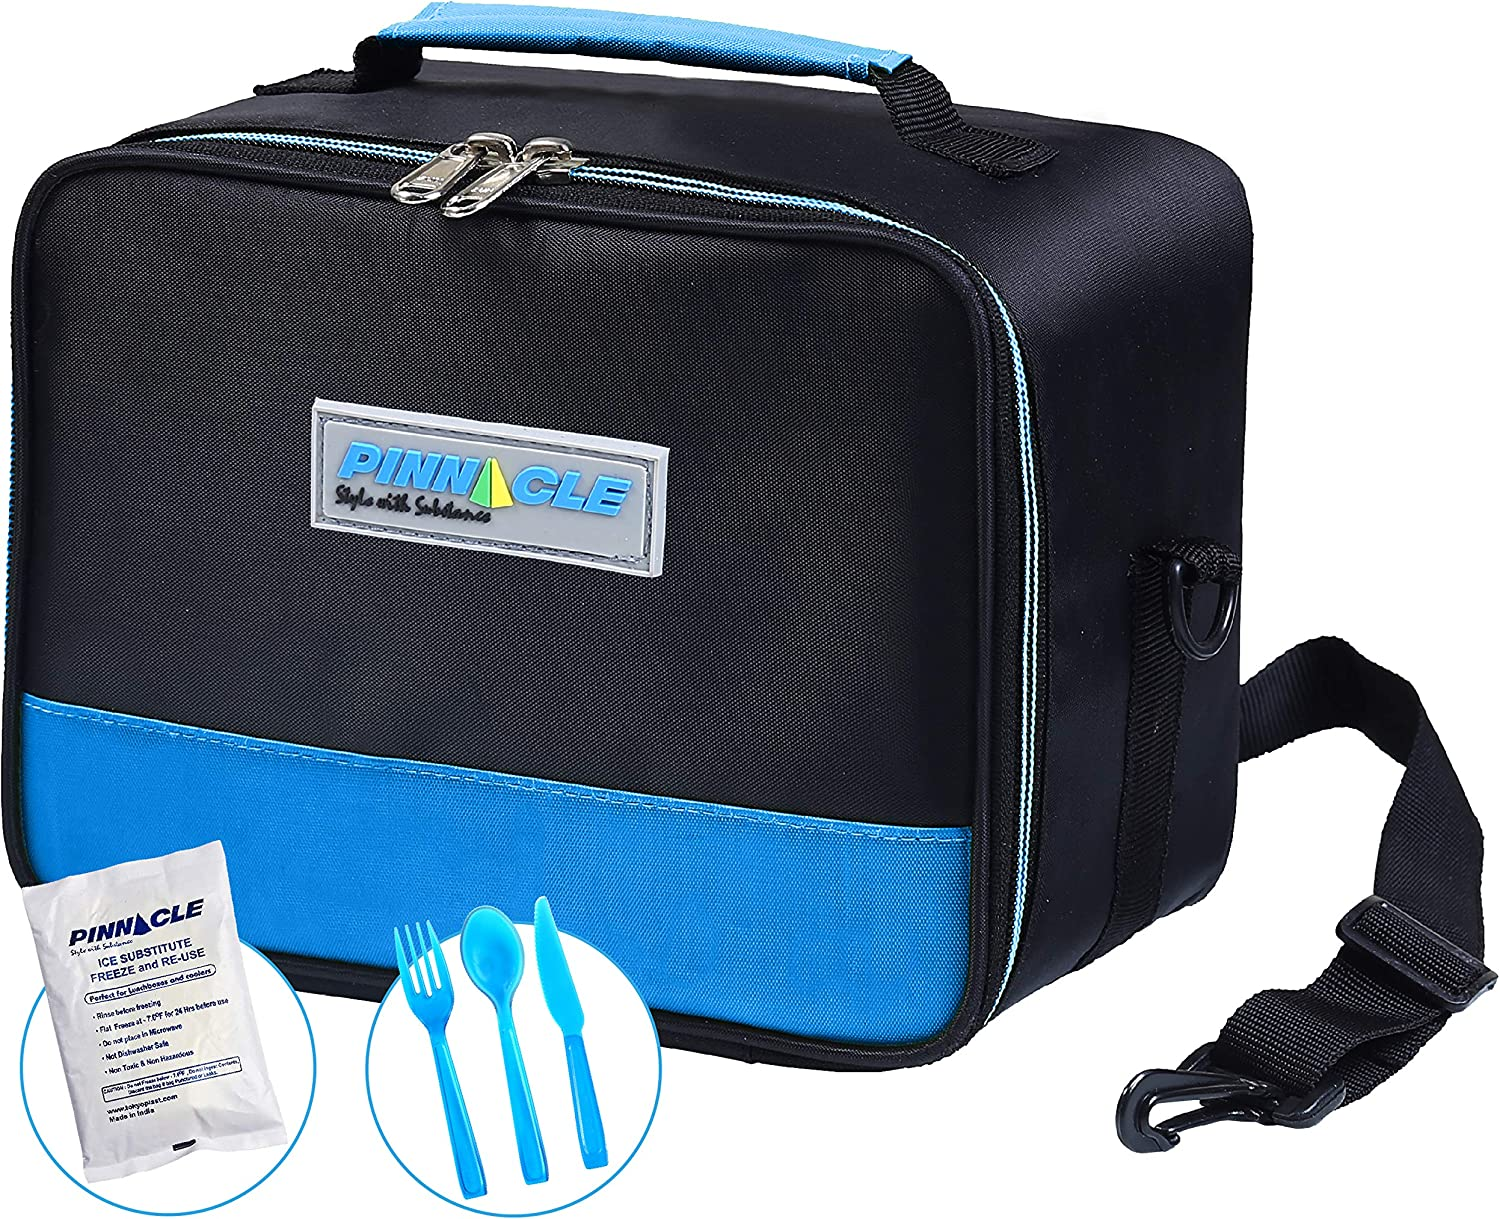 PINNACLE Insulated Reusable Lunch Box, Thermal Lunch Tote, For Adults and Kids - Lunch Bag With BONUS GEL ICE PACK And MATCHING CUTLERY - 2 Way Zipper - Blue